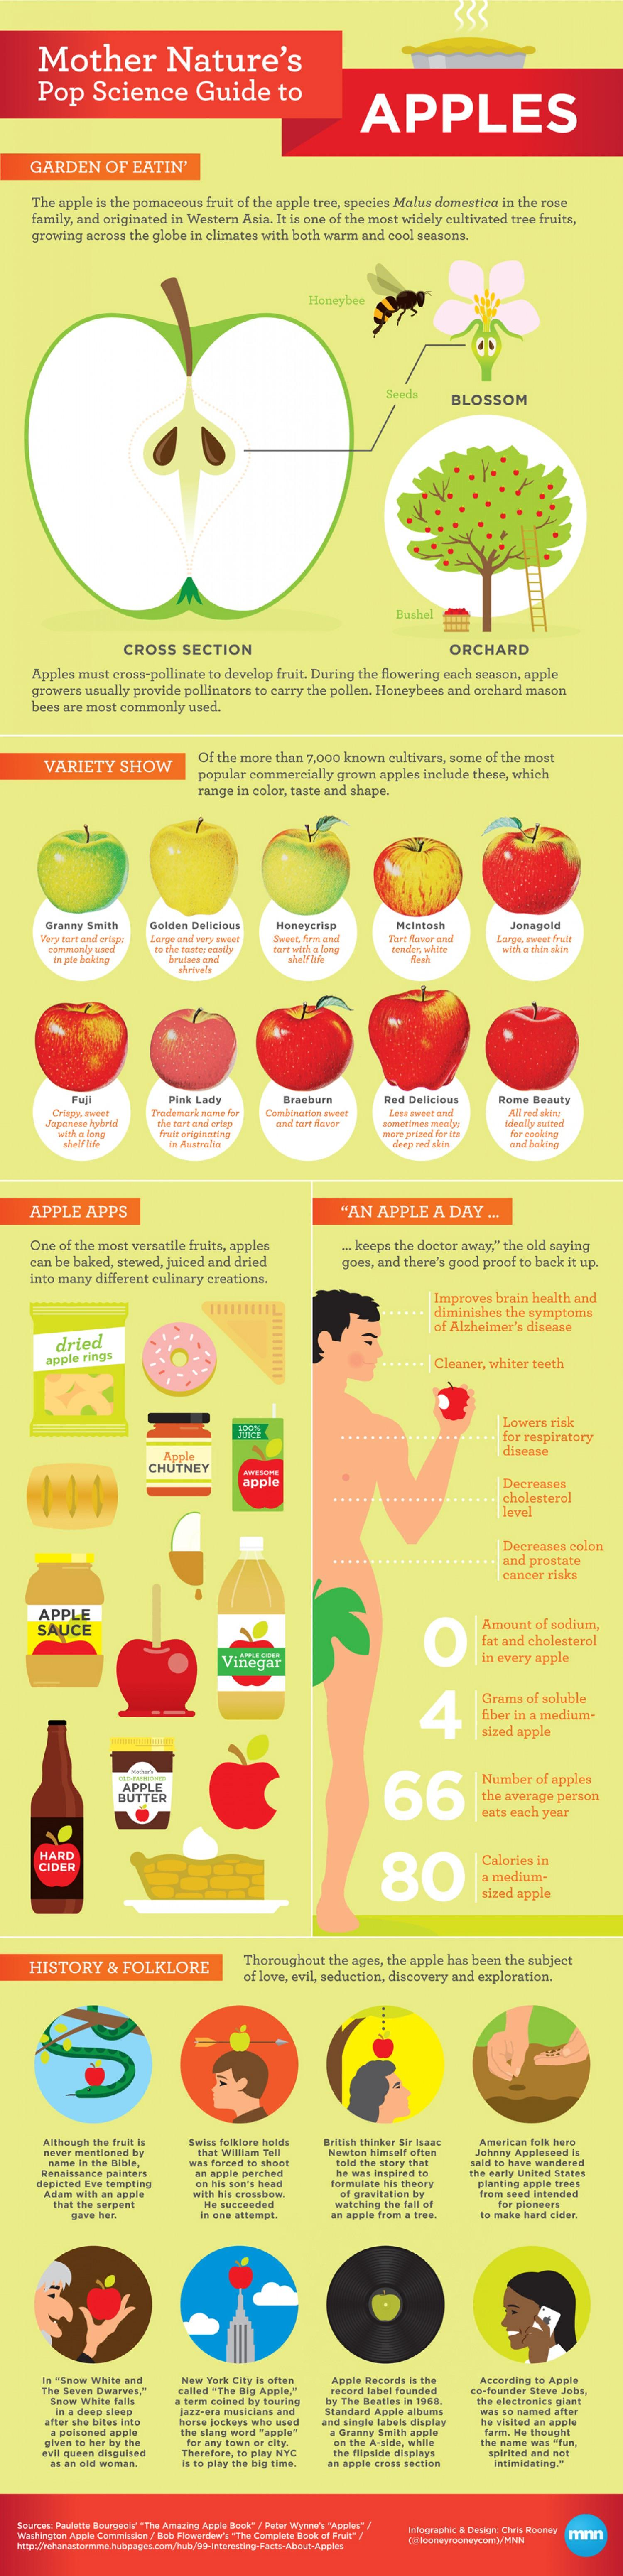 Mother Nature's Pop Science Guide to Apples